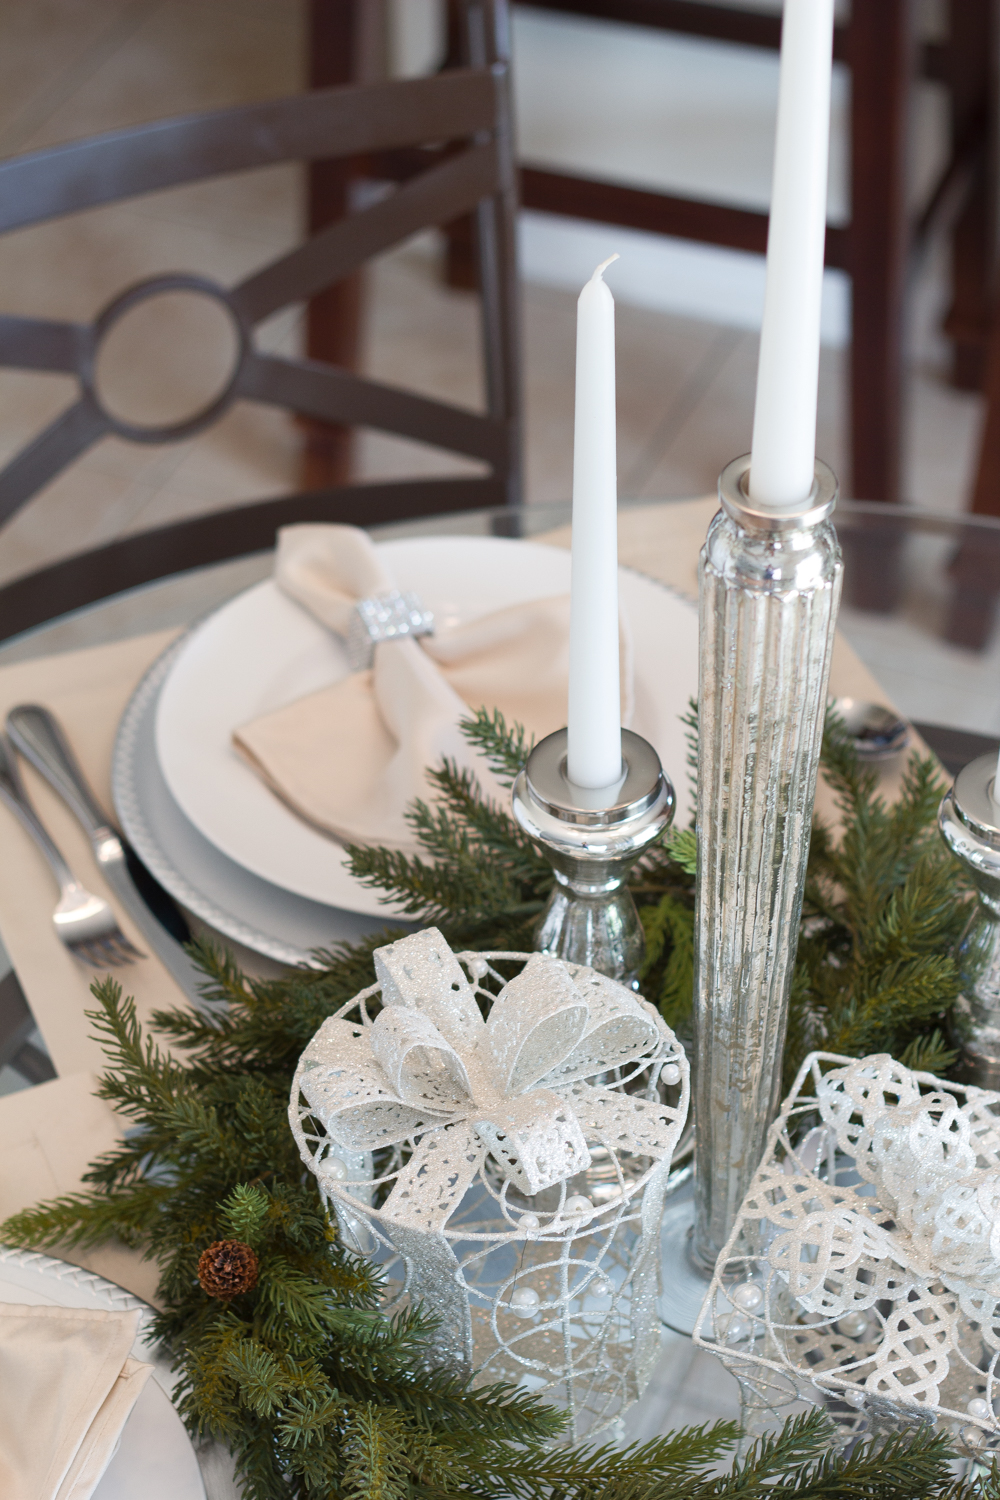 Christmas tablescaping small table #ad #AtHomeforChristmas #AtHomeFinds #decor #decortips